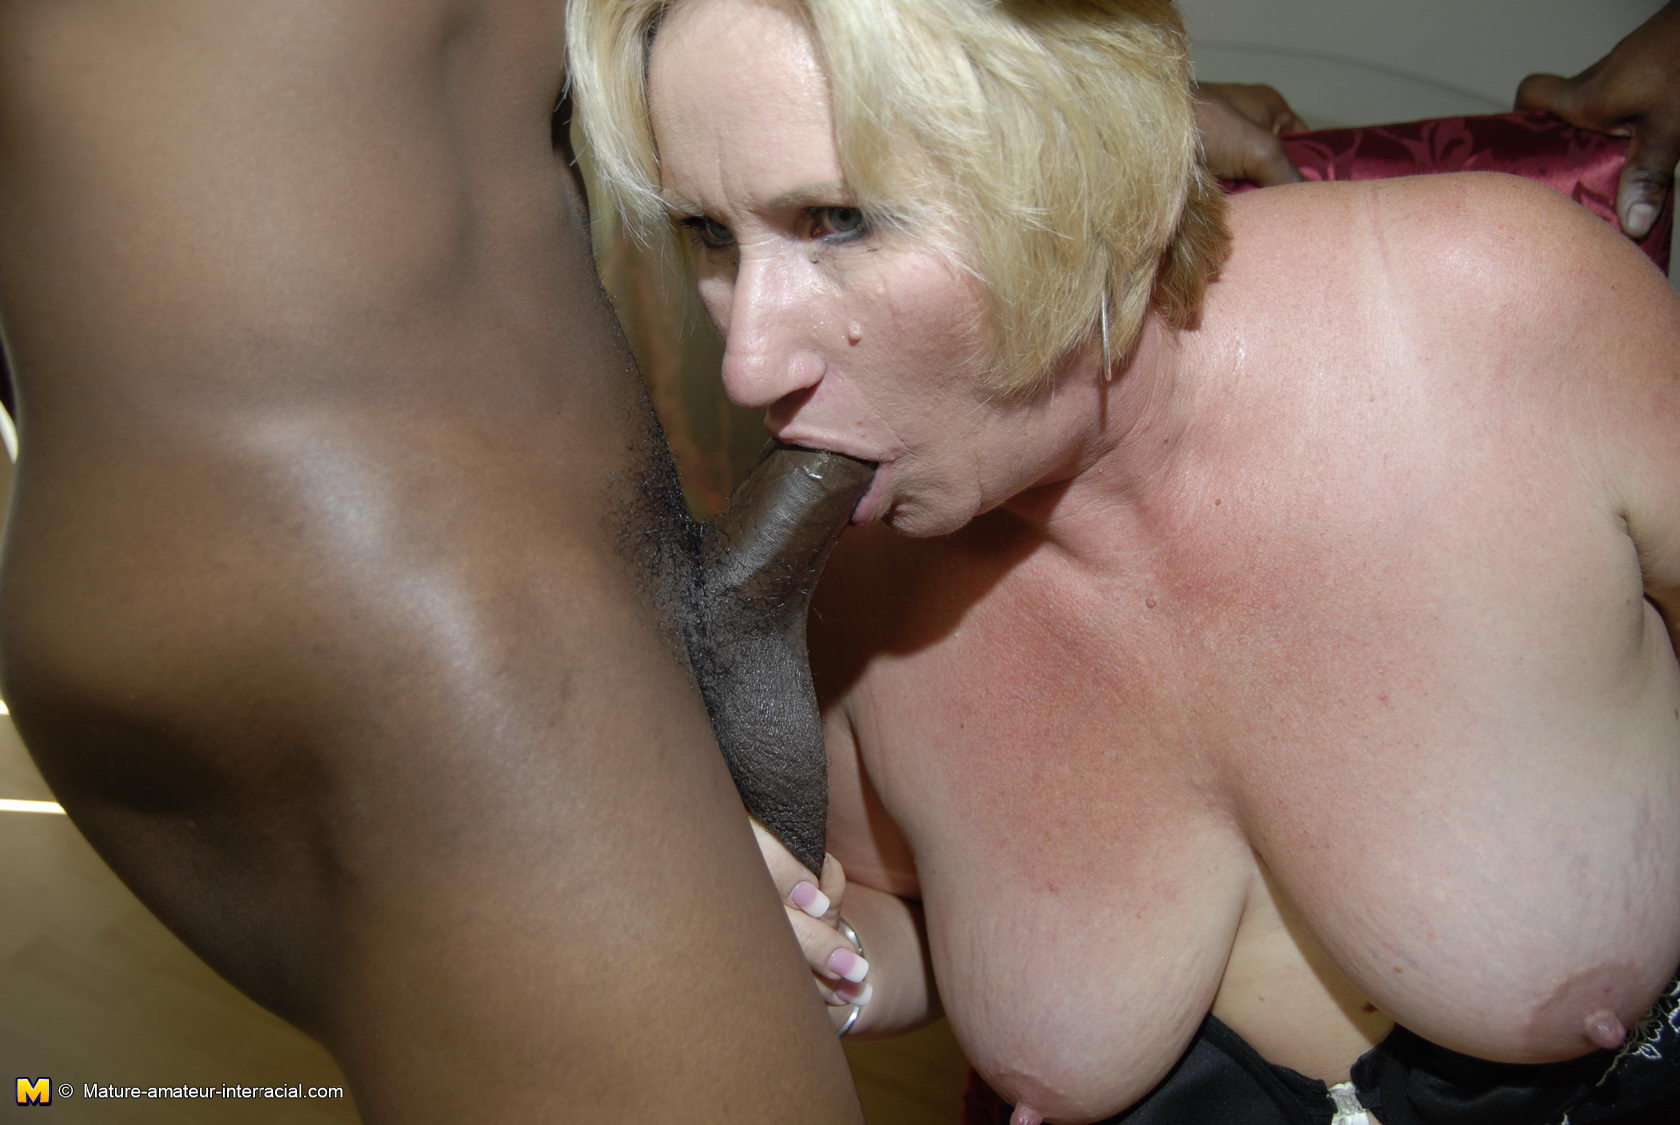 Skinny Mature Pussy Against a Big Black Cock - Free